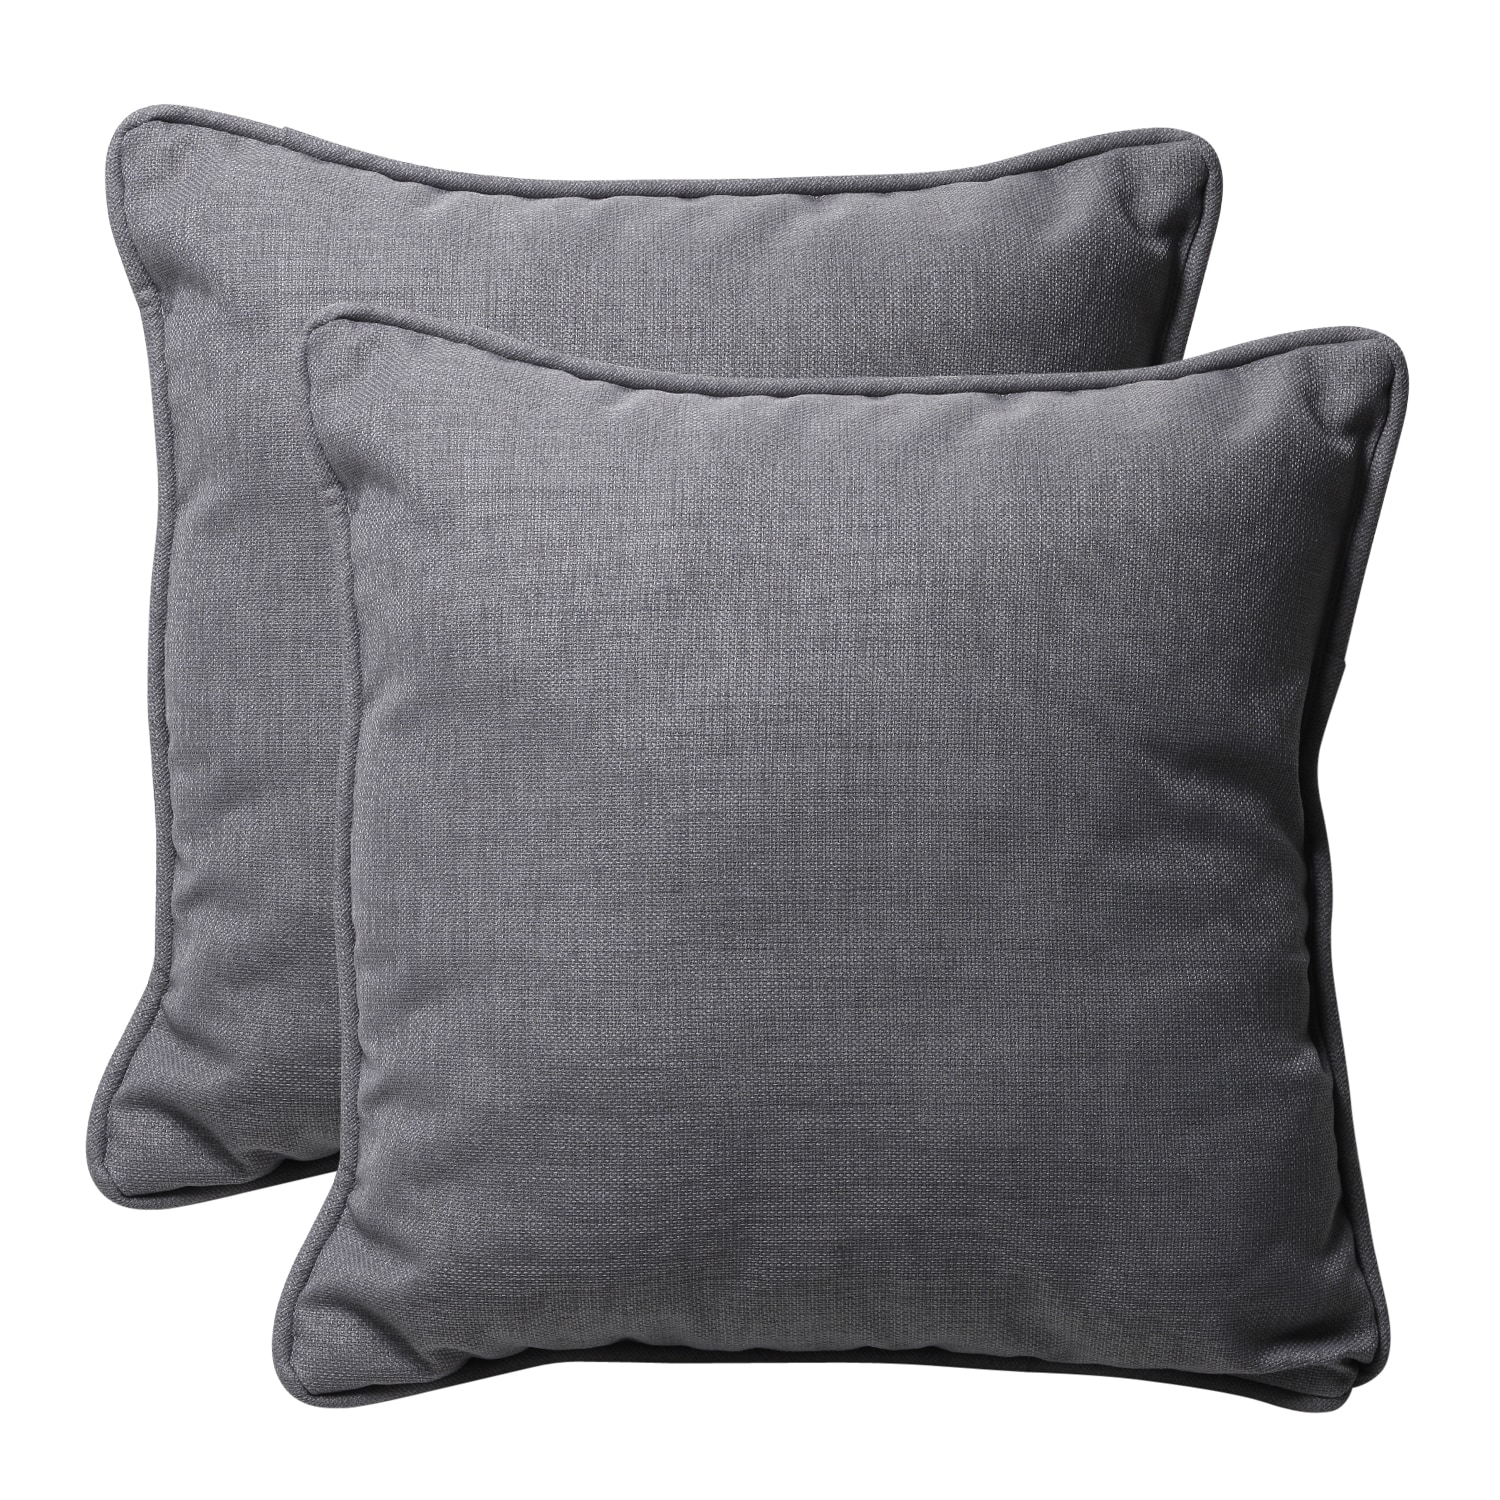 Decorative Grey Textured Solid Square Outdoor Toss Pillows